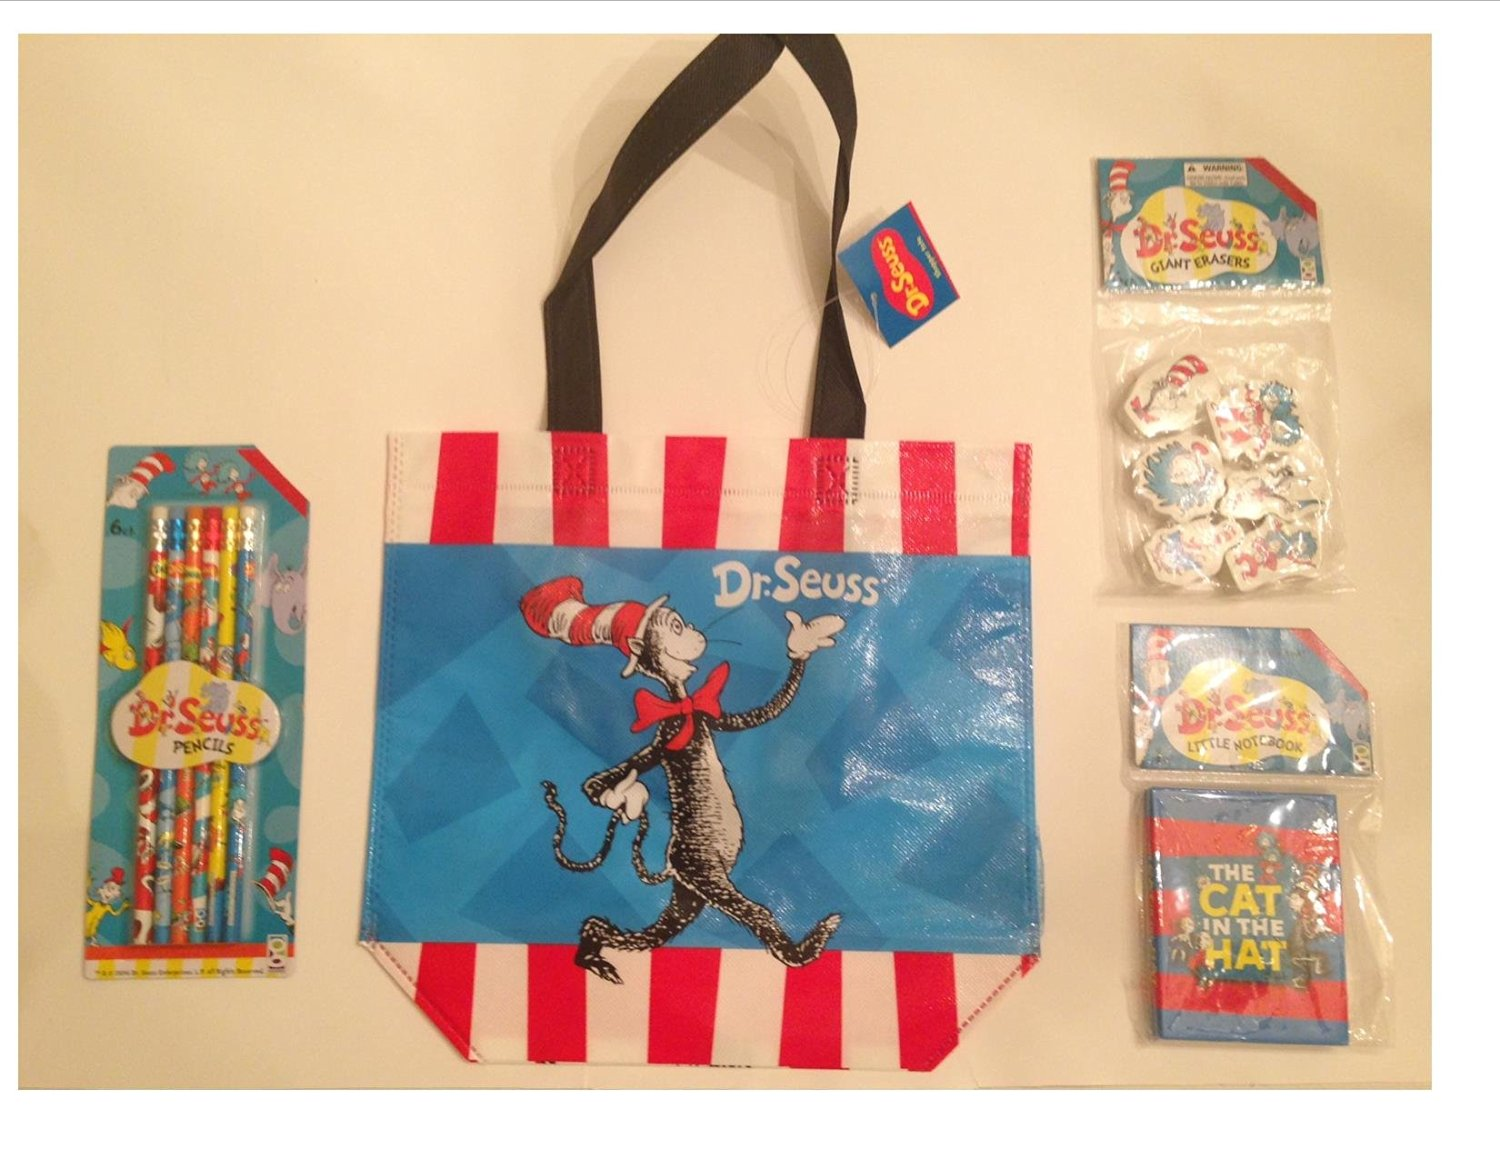 Dr. Seuss The Cat in the Hat Themed Back to School Supply Kit. This 4 Piece Bundle Includes a Mini Shopper Tote, Pencils, Erasers, Little Notebook. Perfect for Teachers Supply, Day Care, Pre-School, Pre-K, Kindergarten, and Elementary School Students.